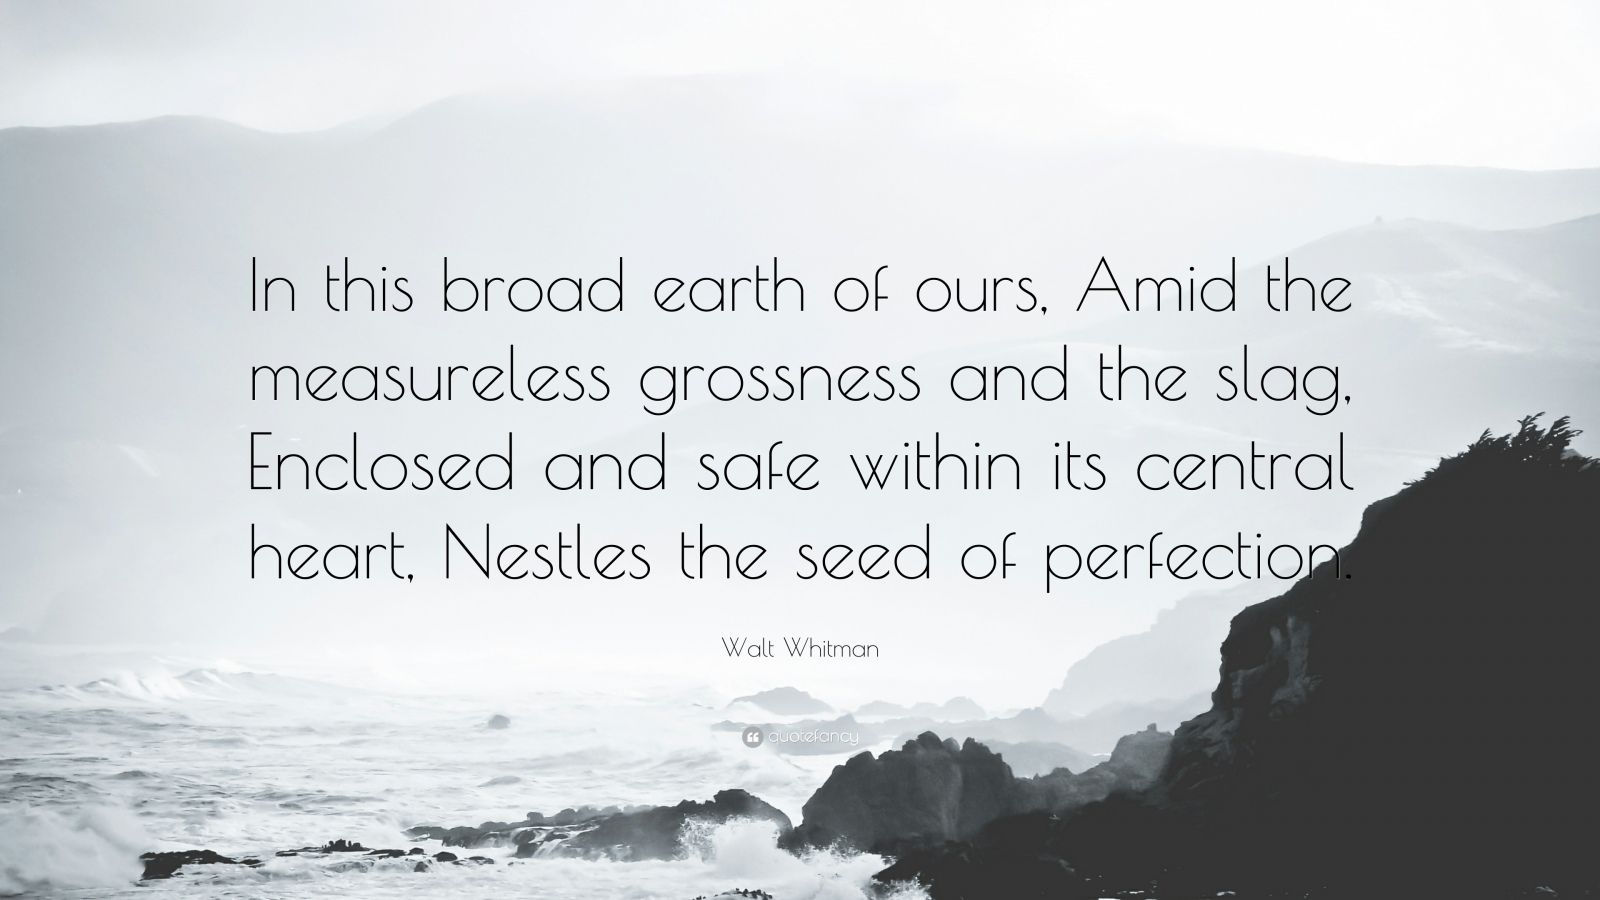 """Walt Whitman Quote: """"In this broad earth of ours, Amid the measureless grossness and the slag, Enclosed and safe within its central heart, Nestles the seed of perfection."""""""